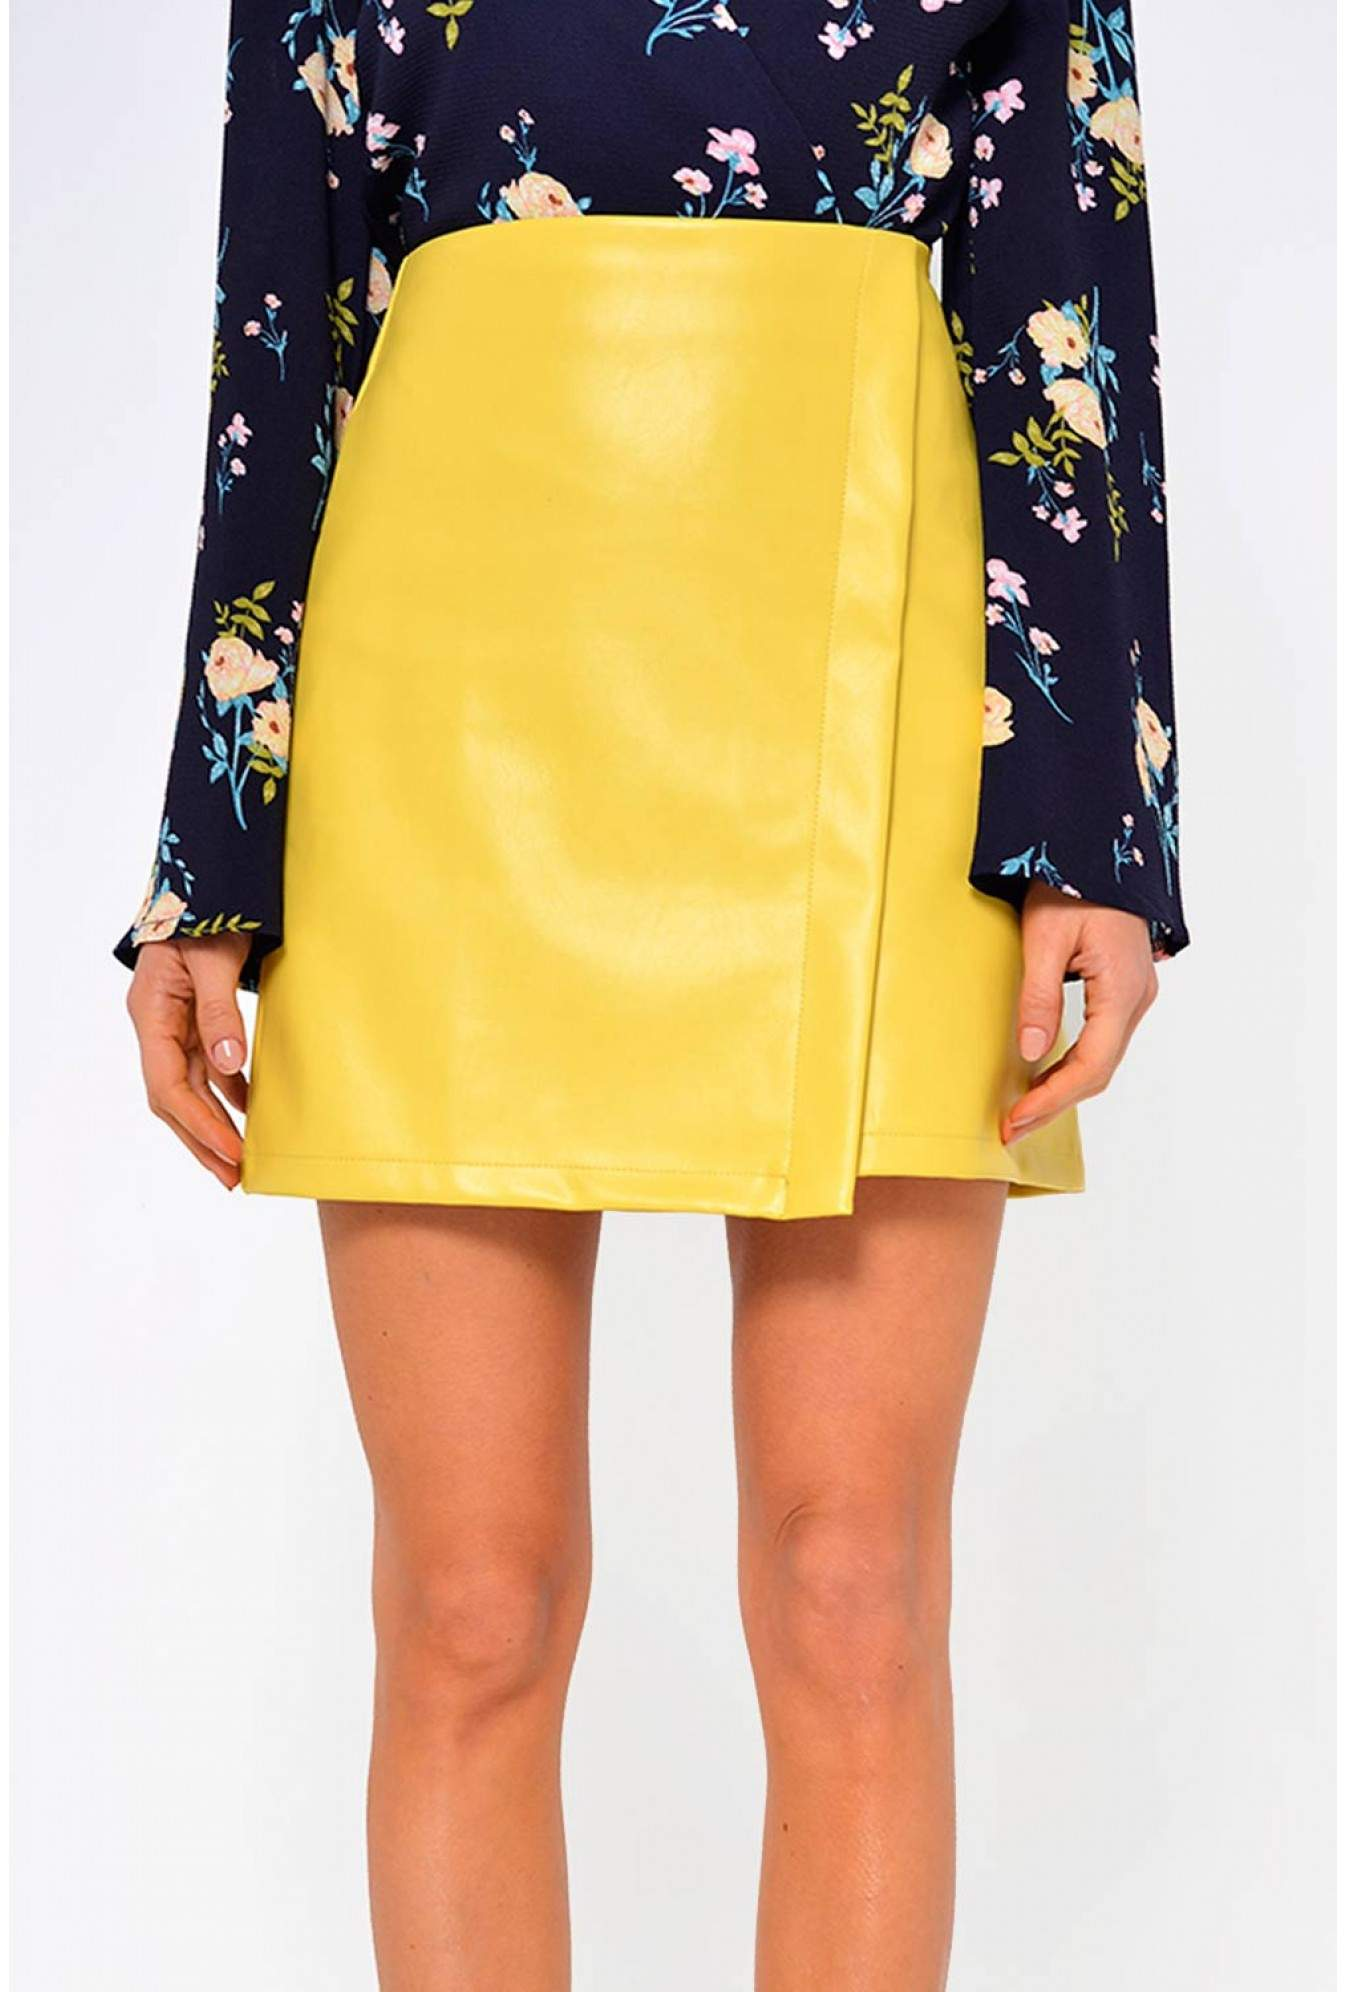 b9a2c5a9e42ec9 More Views. Tess Faux Leather Skirt in Yellow. Marc Angelo